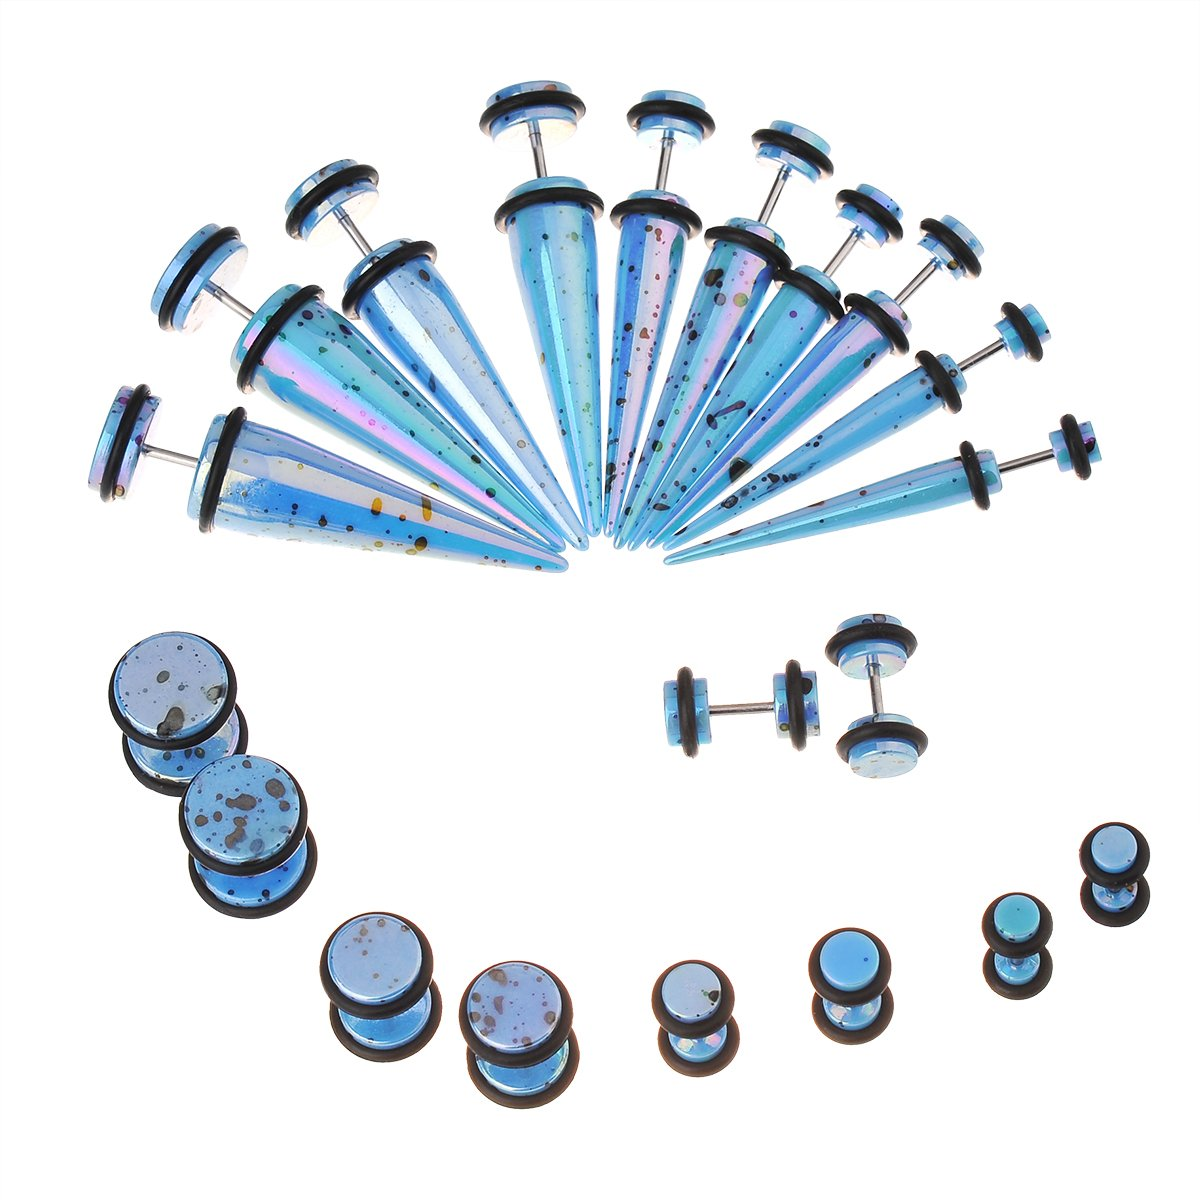 IPINK-10 Pairs Acrylic Taper & Barbell Round Stud Fake/ Cheater/ Illusion Plug Earrings Set 6g-00g Look (Blue)